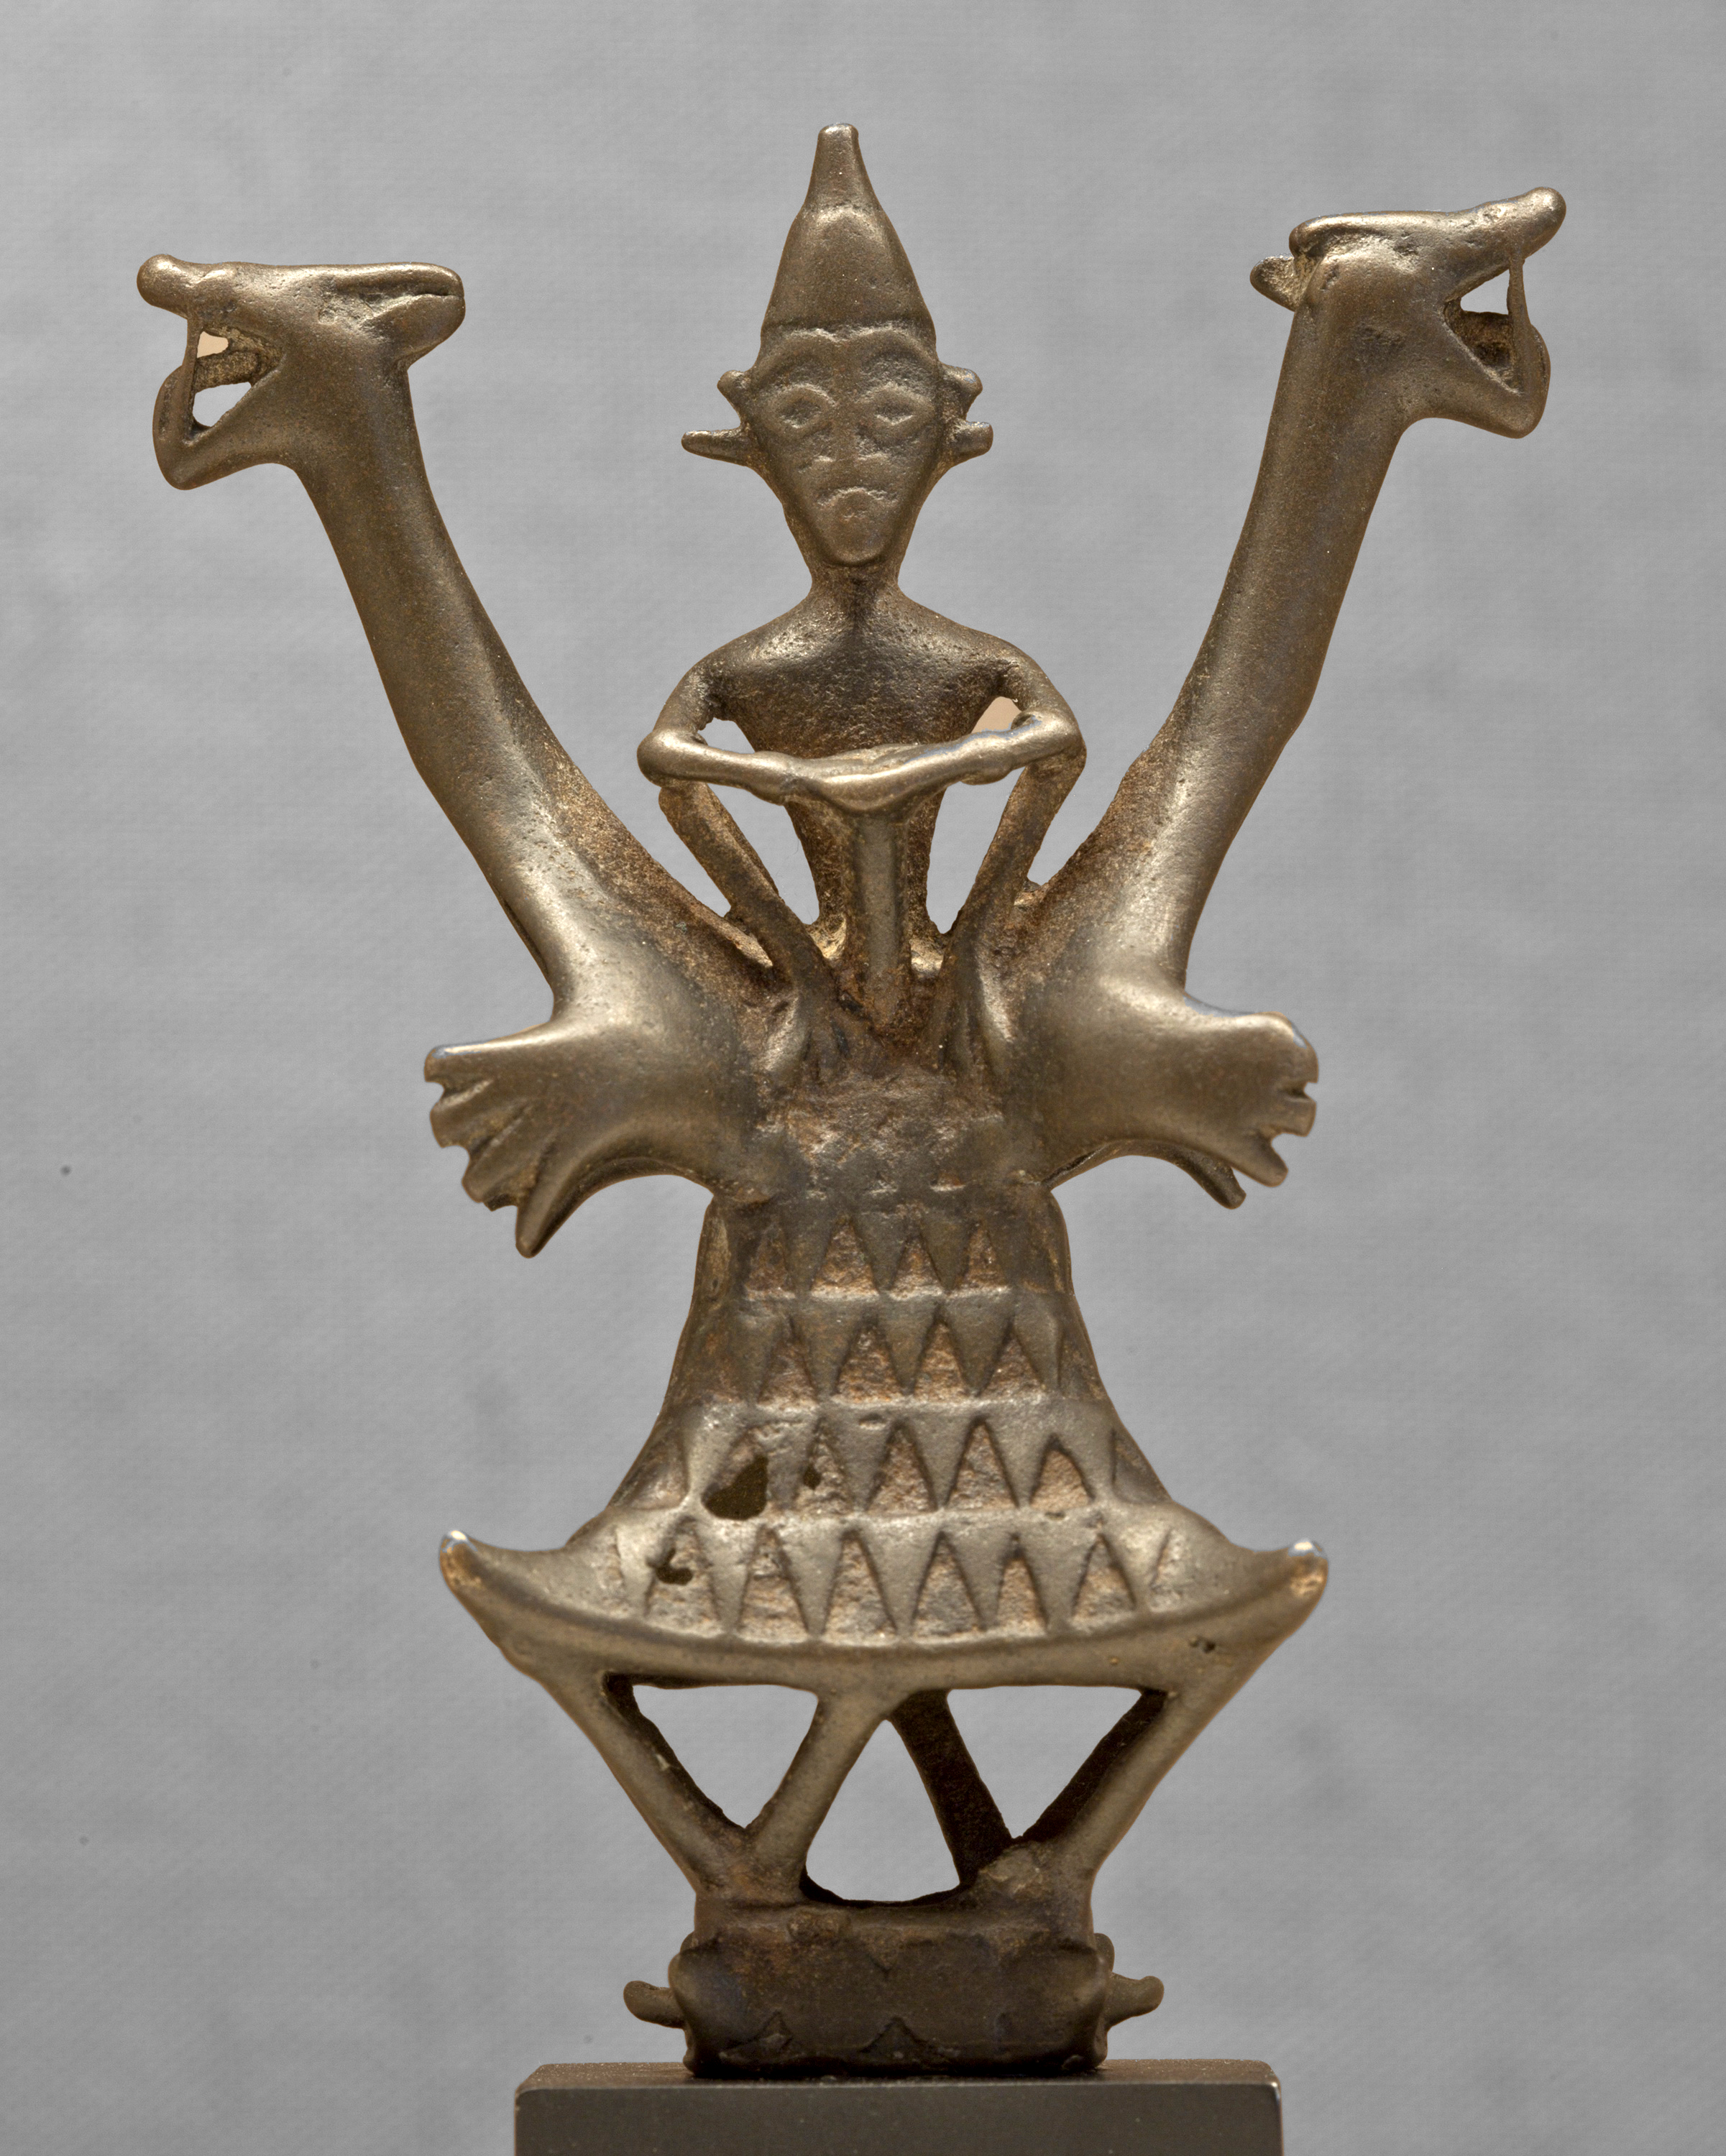 Shrine Object with Figure Atop a Dwelling Flanked by Two Mythological Animals © The Dallas Museum of Art | Texas, USA